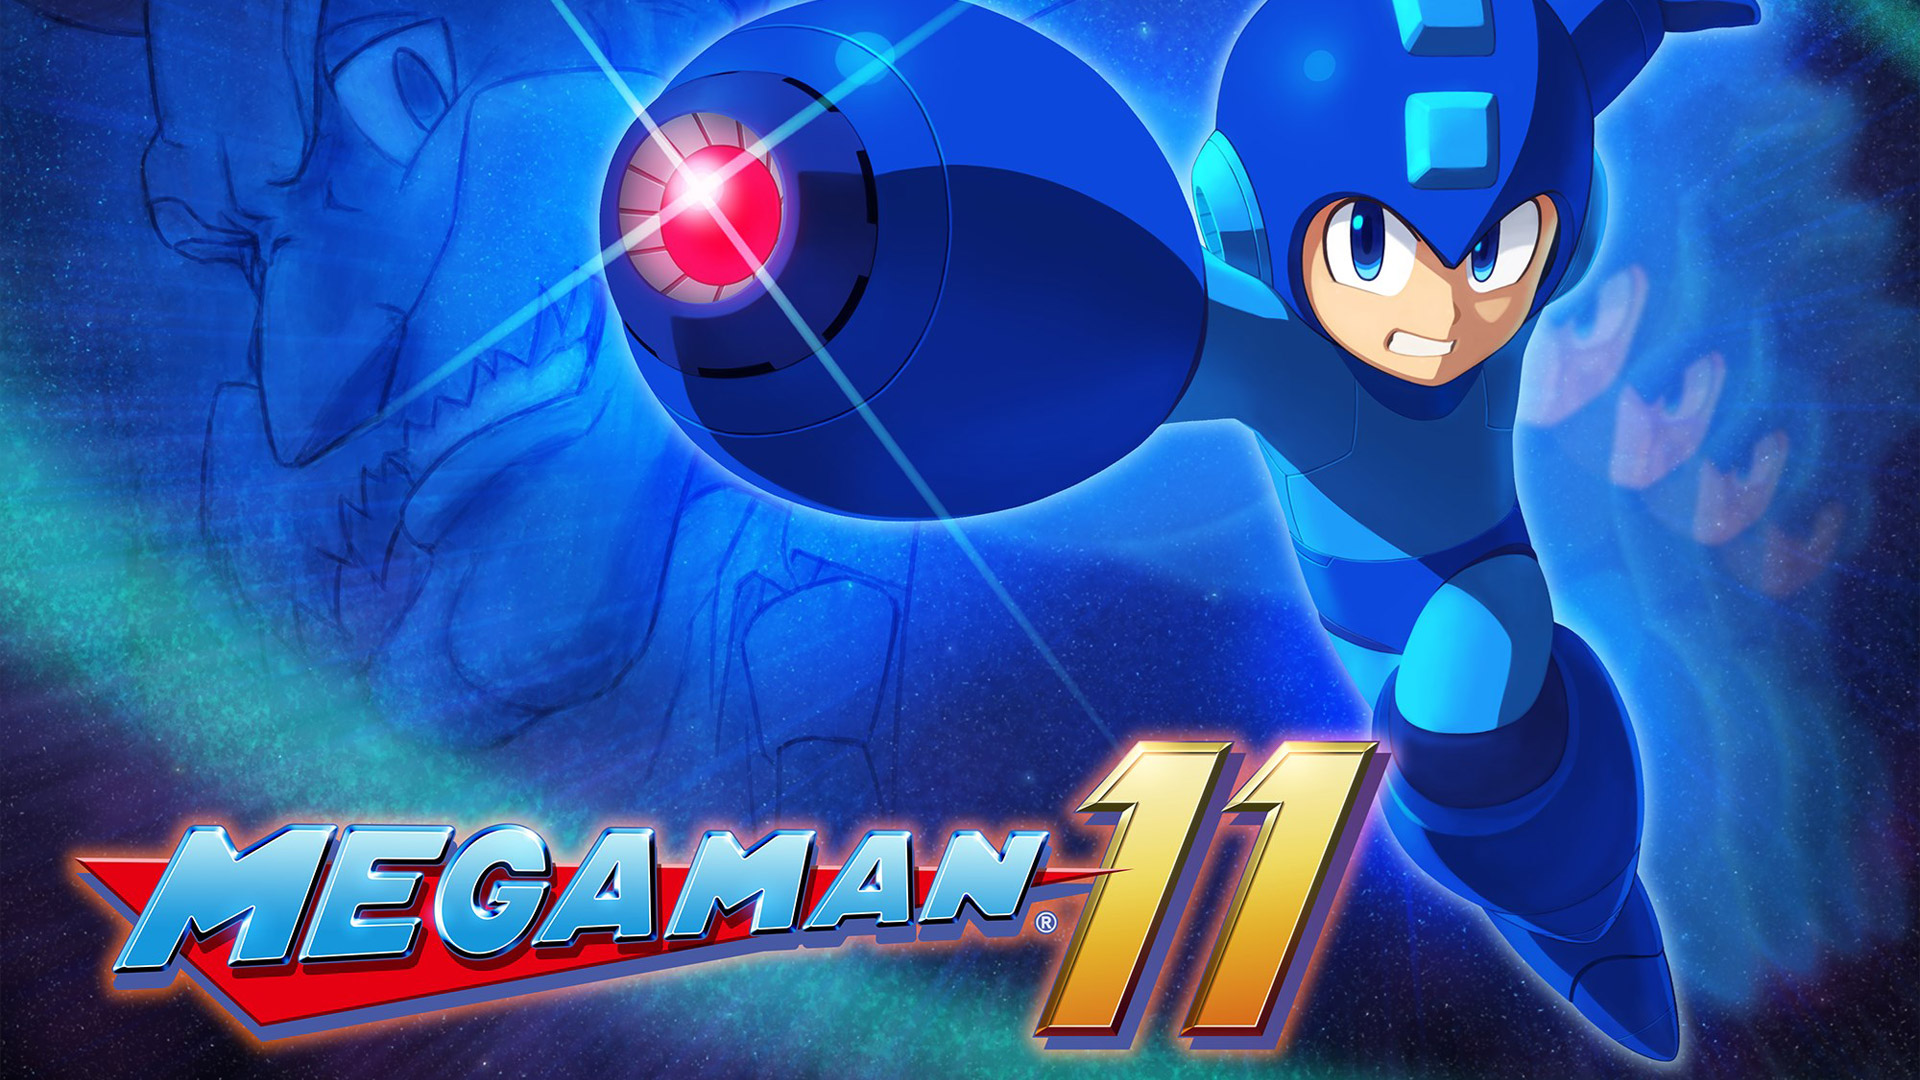 Mega Man 11 Wallpaper in 1920x1080